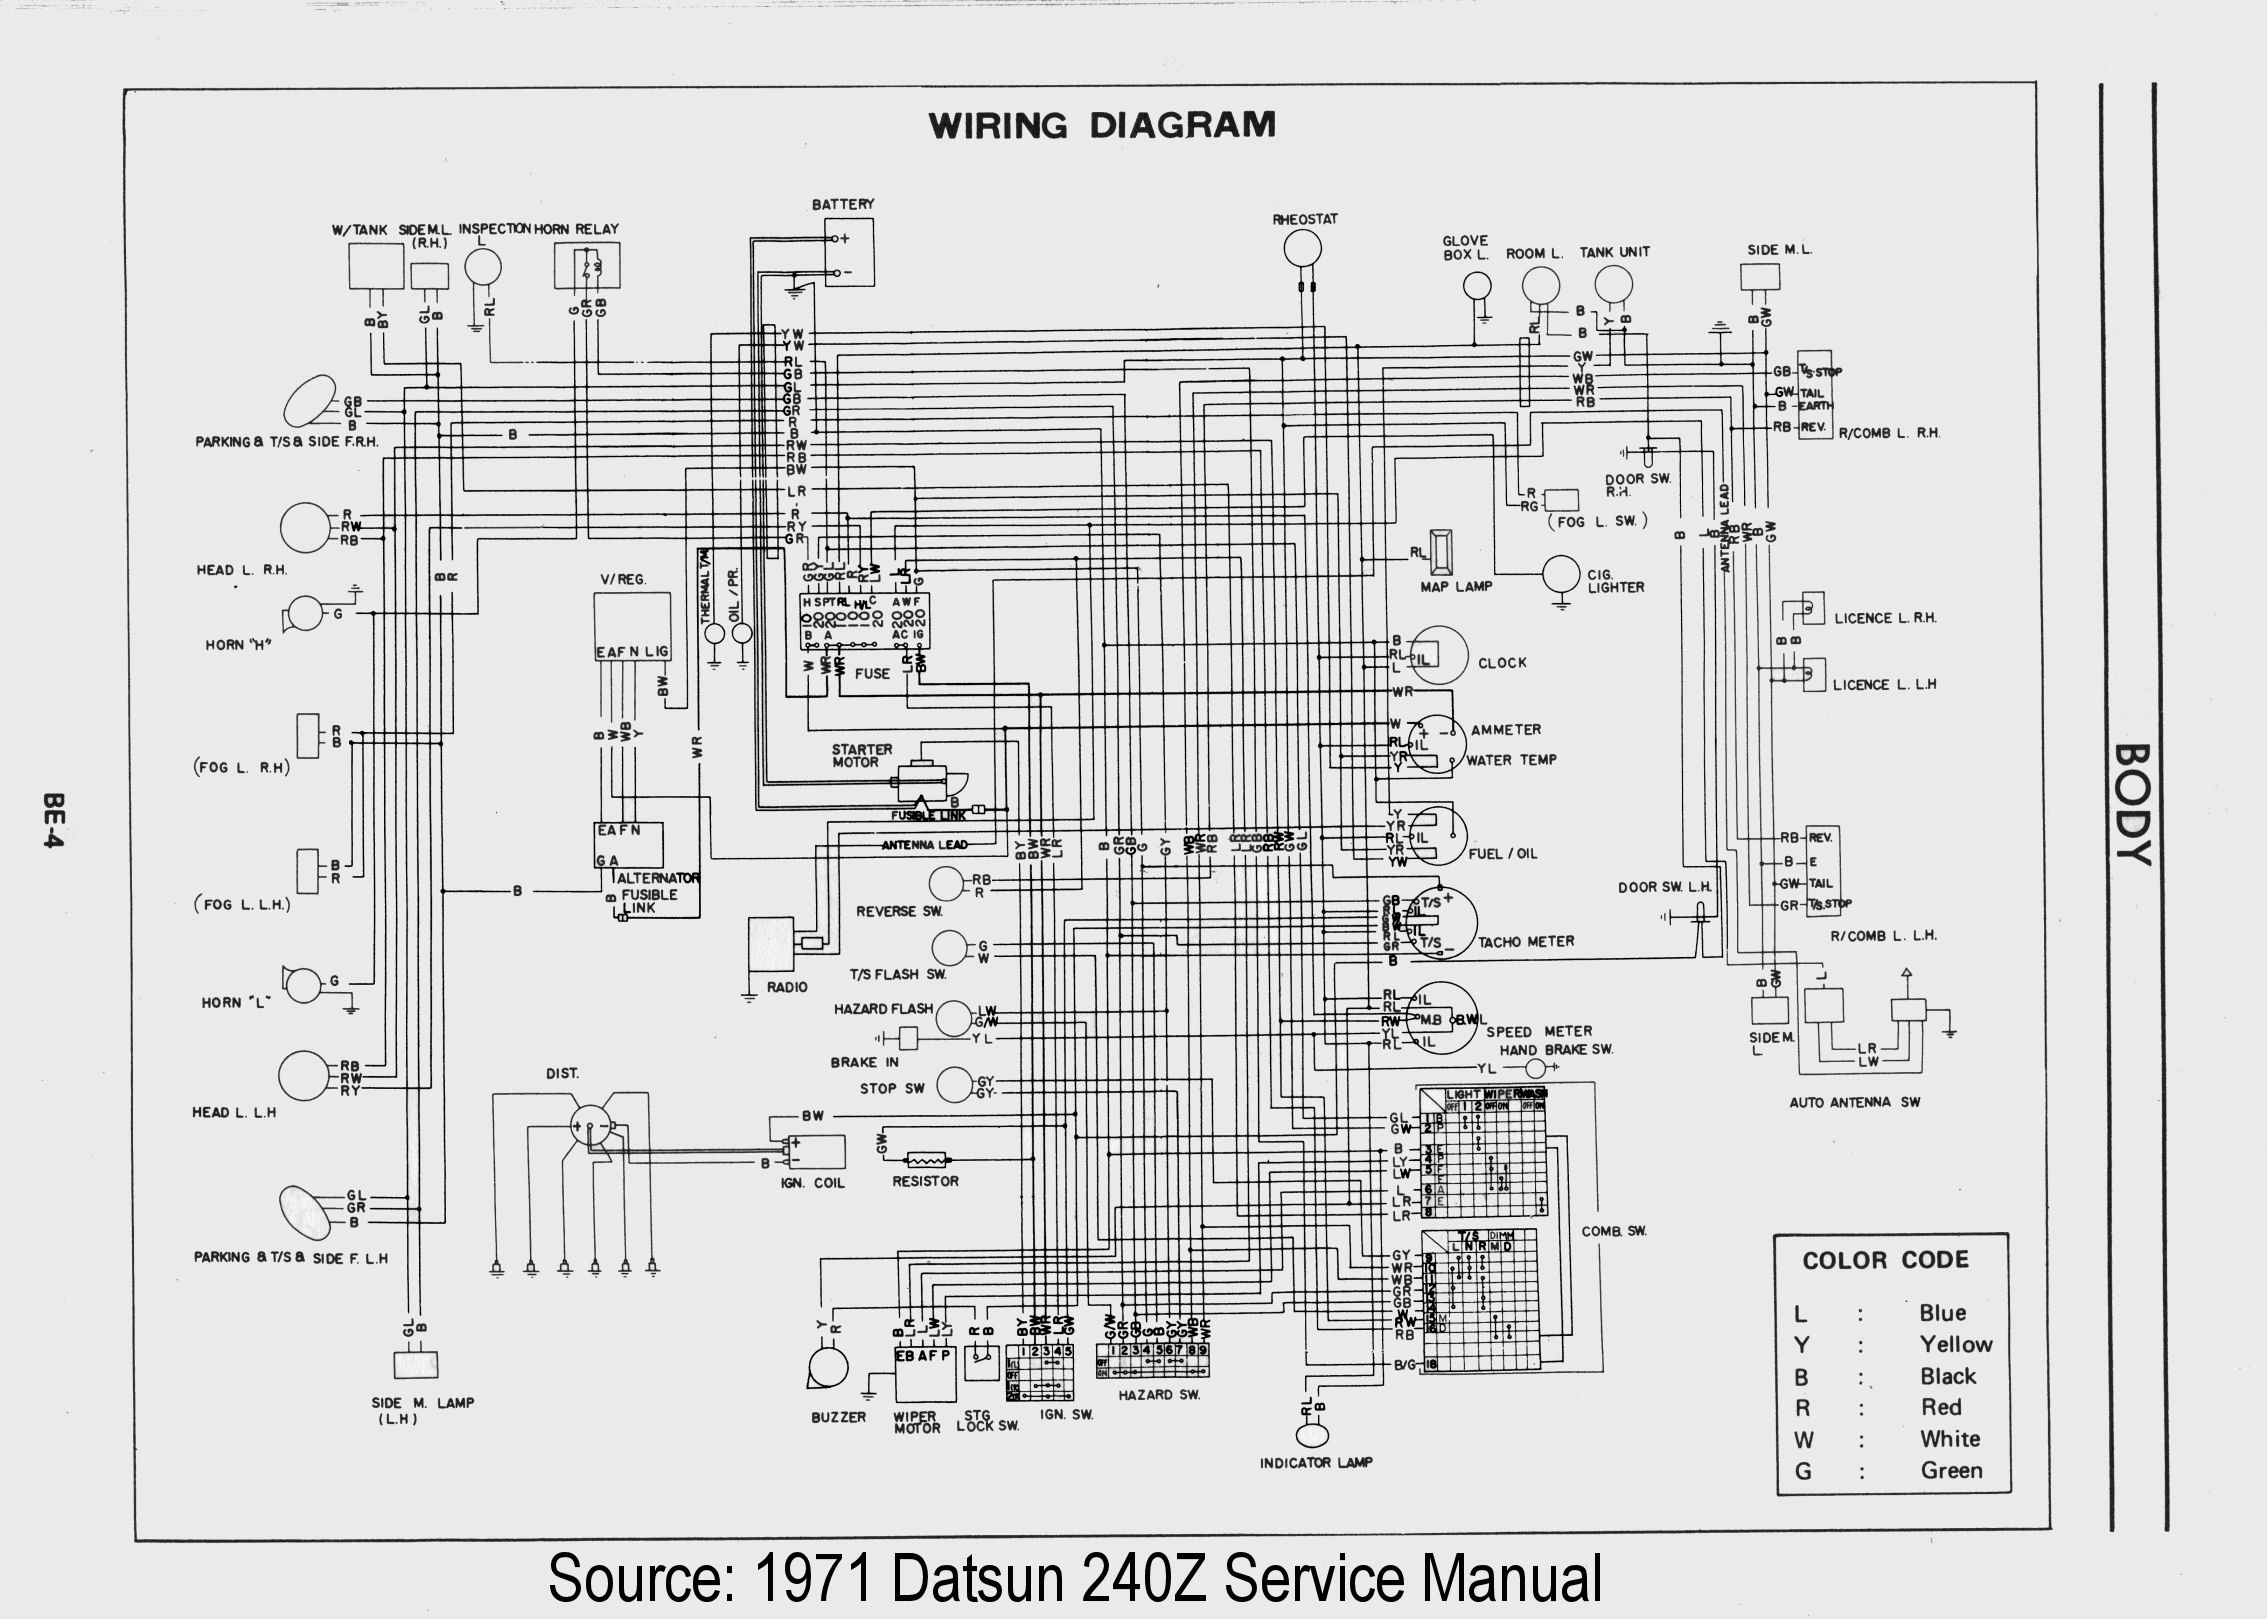 Wiring Diagram HiRes 2 240z wiring diagram 73 240z wiring diagram \u2022 wiring diagrams j In a 98 Dodge Dakota Wiring Harness at virtualis.co